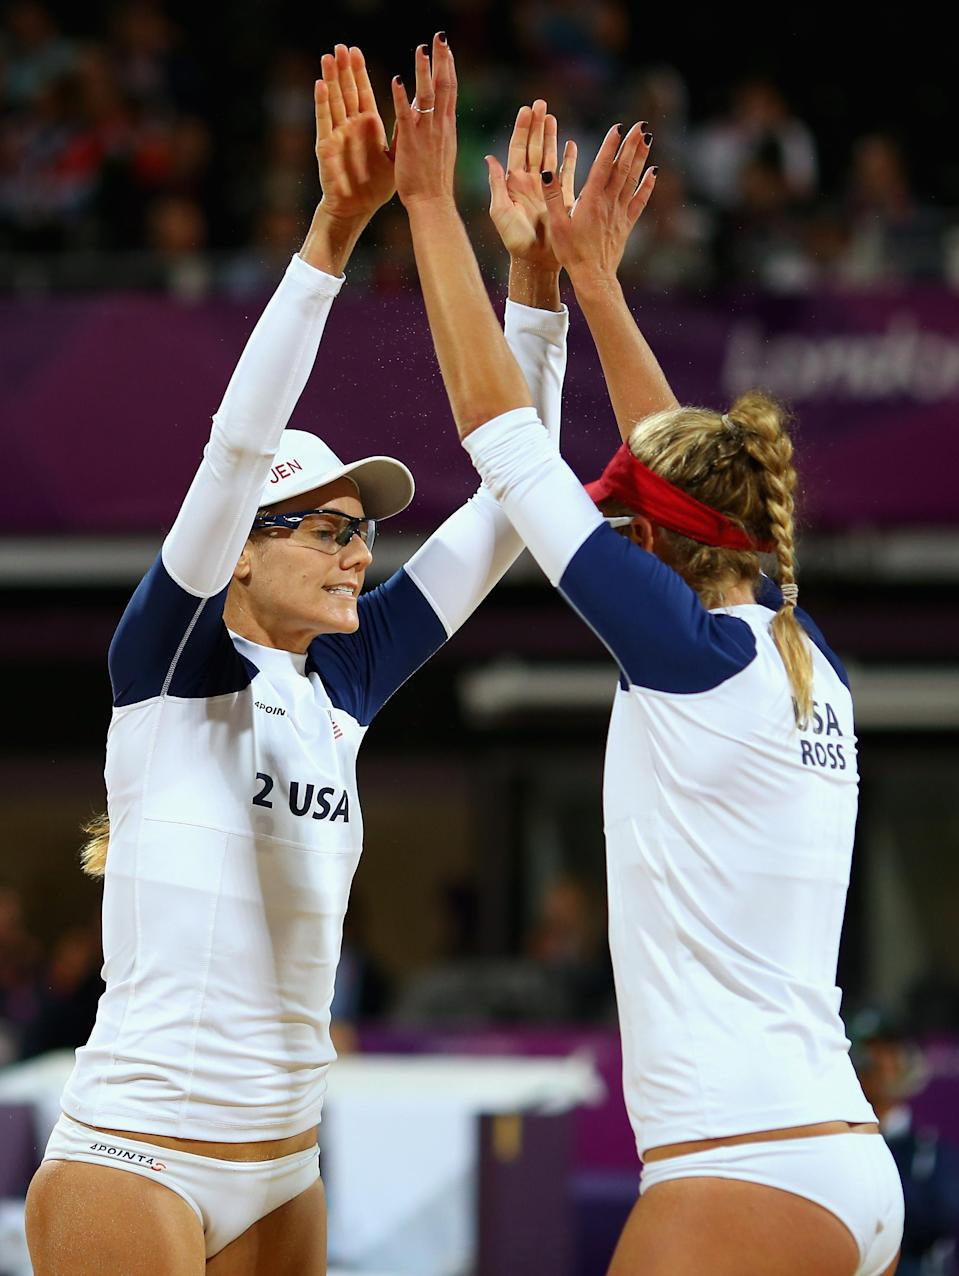 LONDON, ENGLAND - AUGUST 05: April Ross of the United States and Jennifer Kessy of the United States celebrate during the Women's Beach Volleyball Quarter Final match between United States and Czech Republic on Day 9 of the London 2012 Olympic Games at Horse Guards Parade on August 5, 2012 in London, England. (Photo by Ryan Pierse/Getty Images)